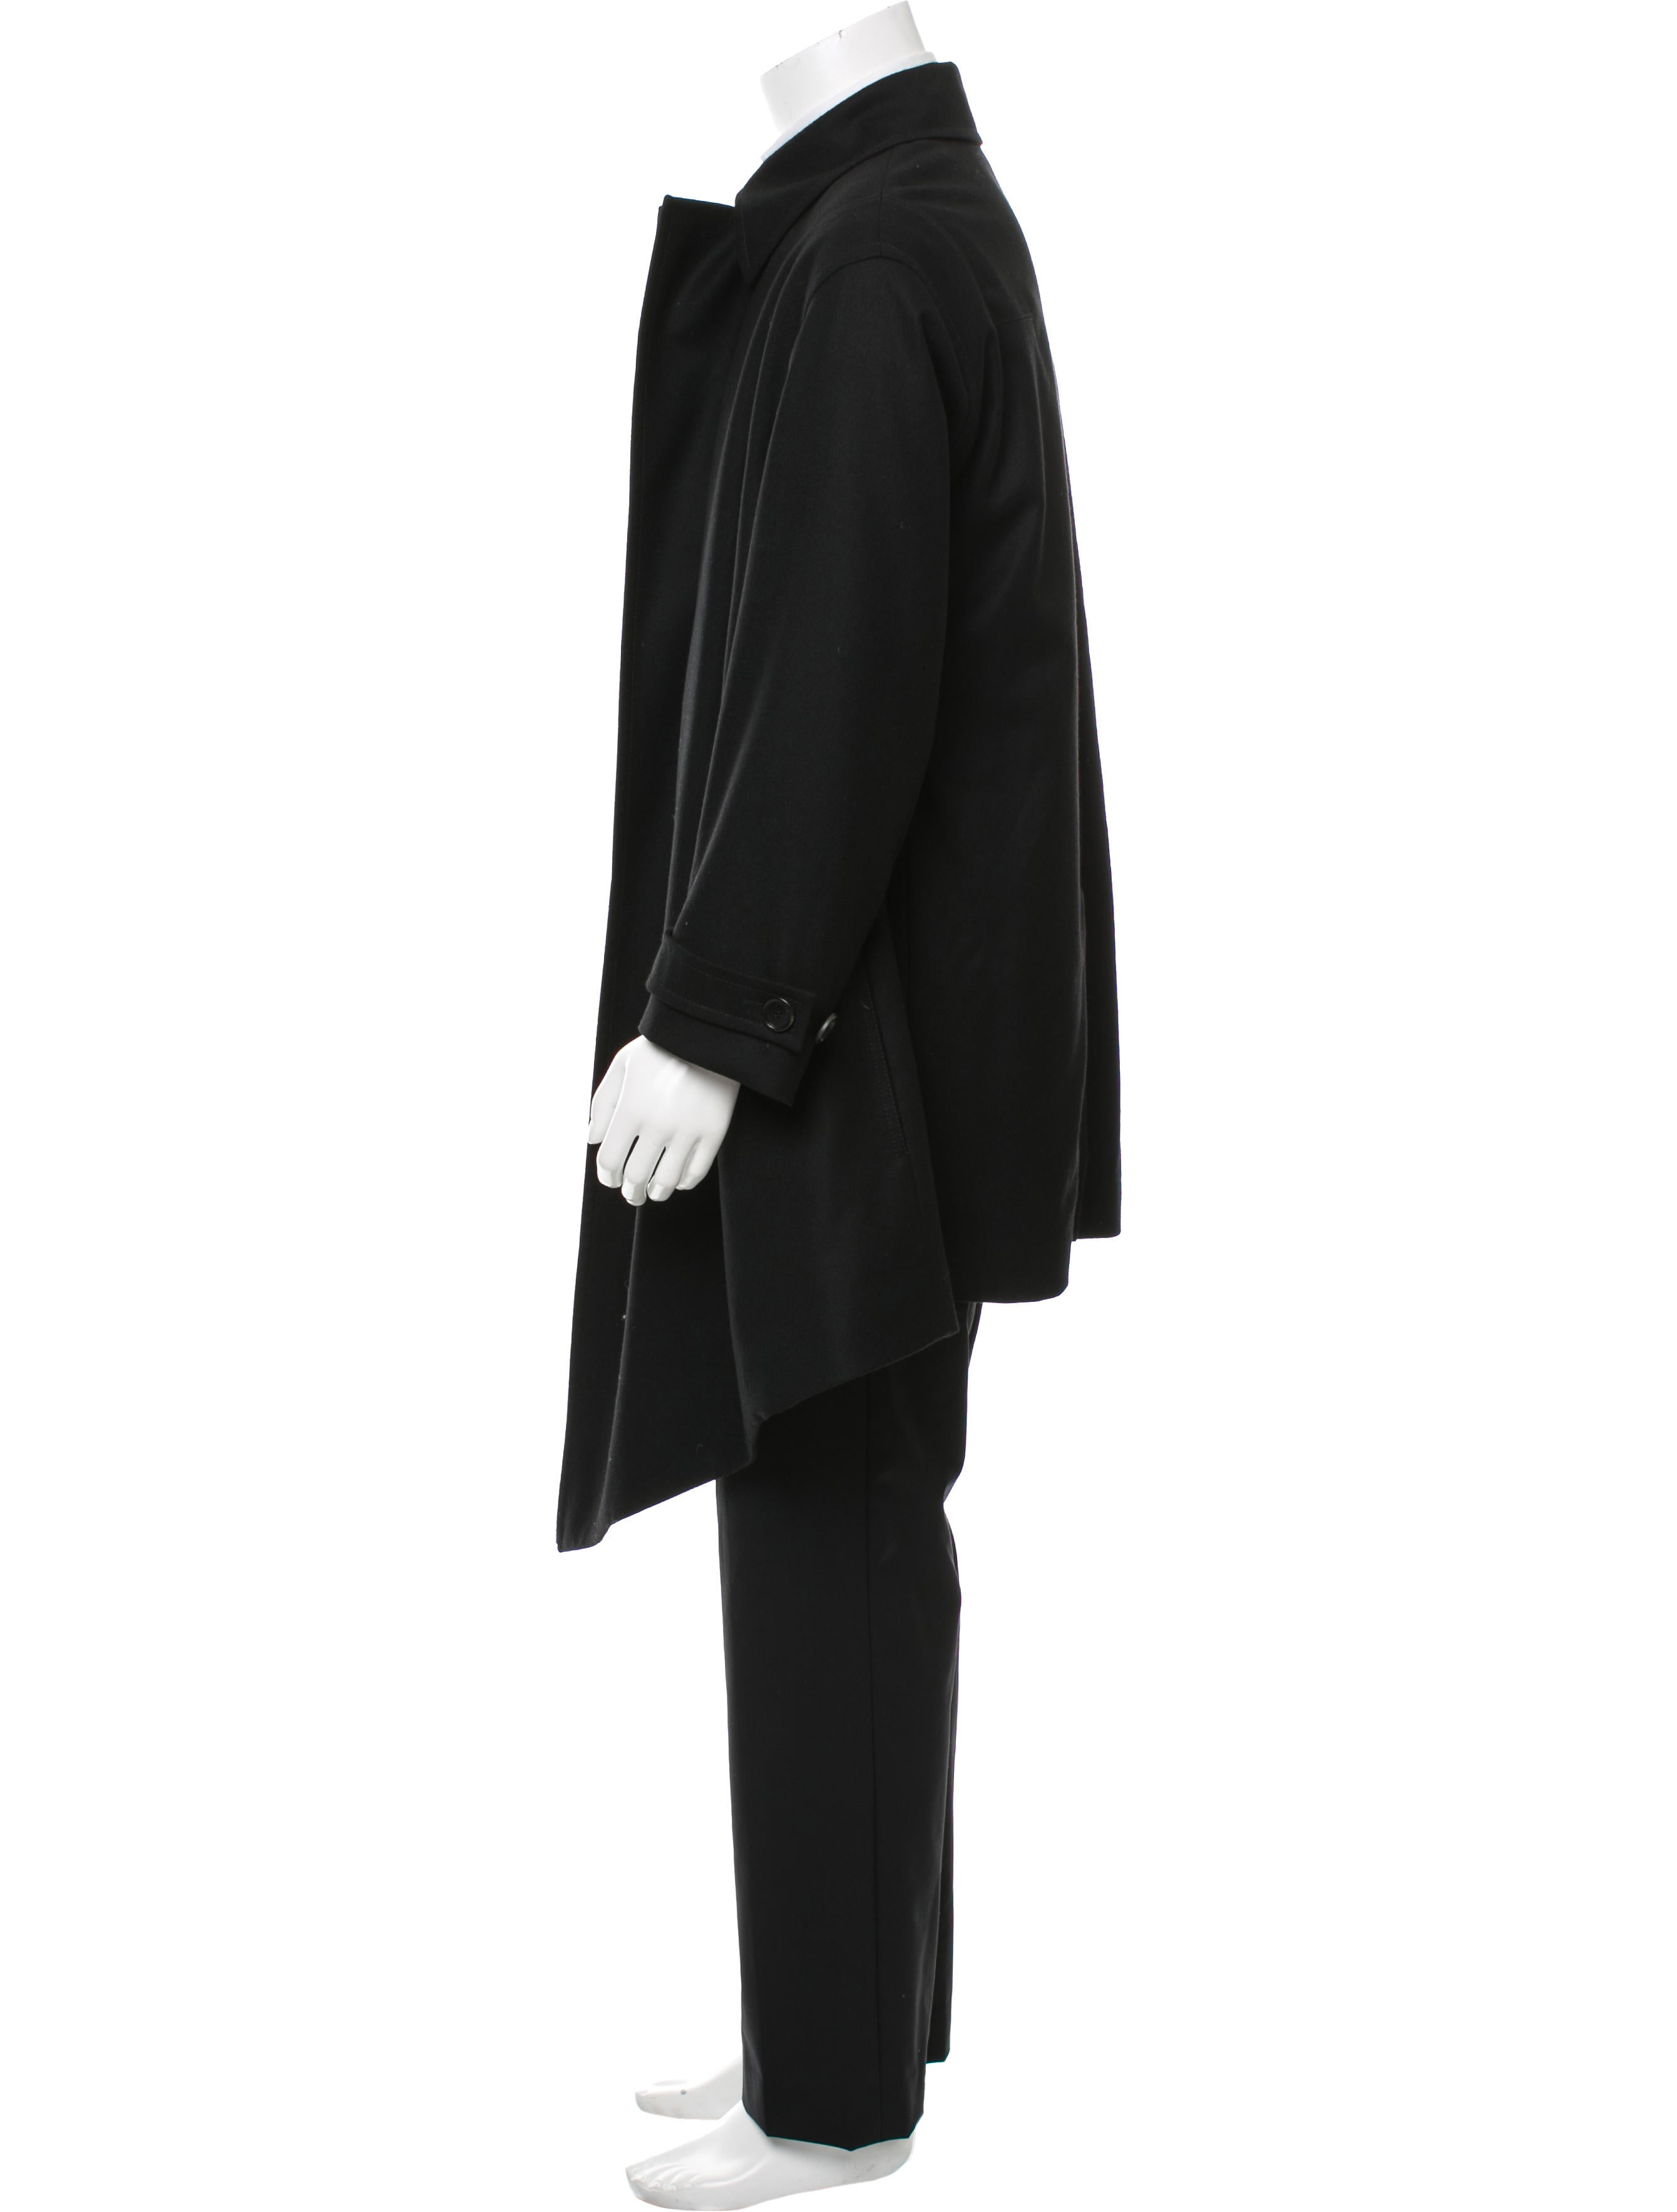 dior homme open front wool trench coat clothing hmm22971 the realreal. Black Bedroom Furniture Sets. Home Design Ideas